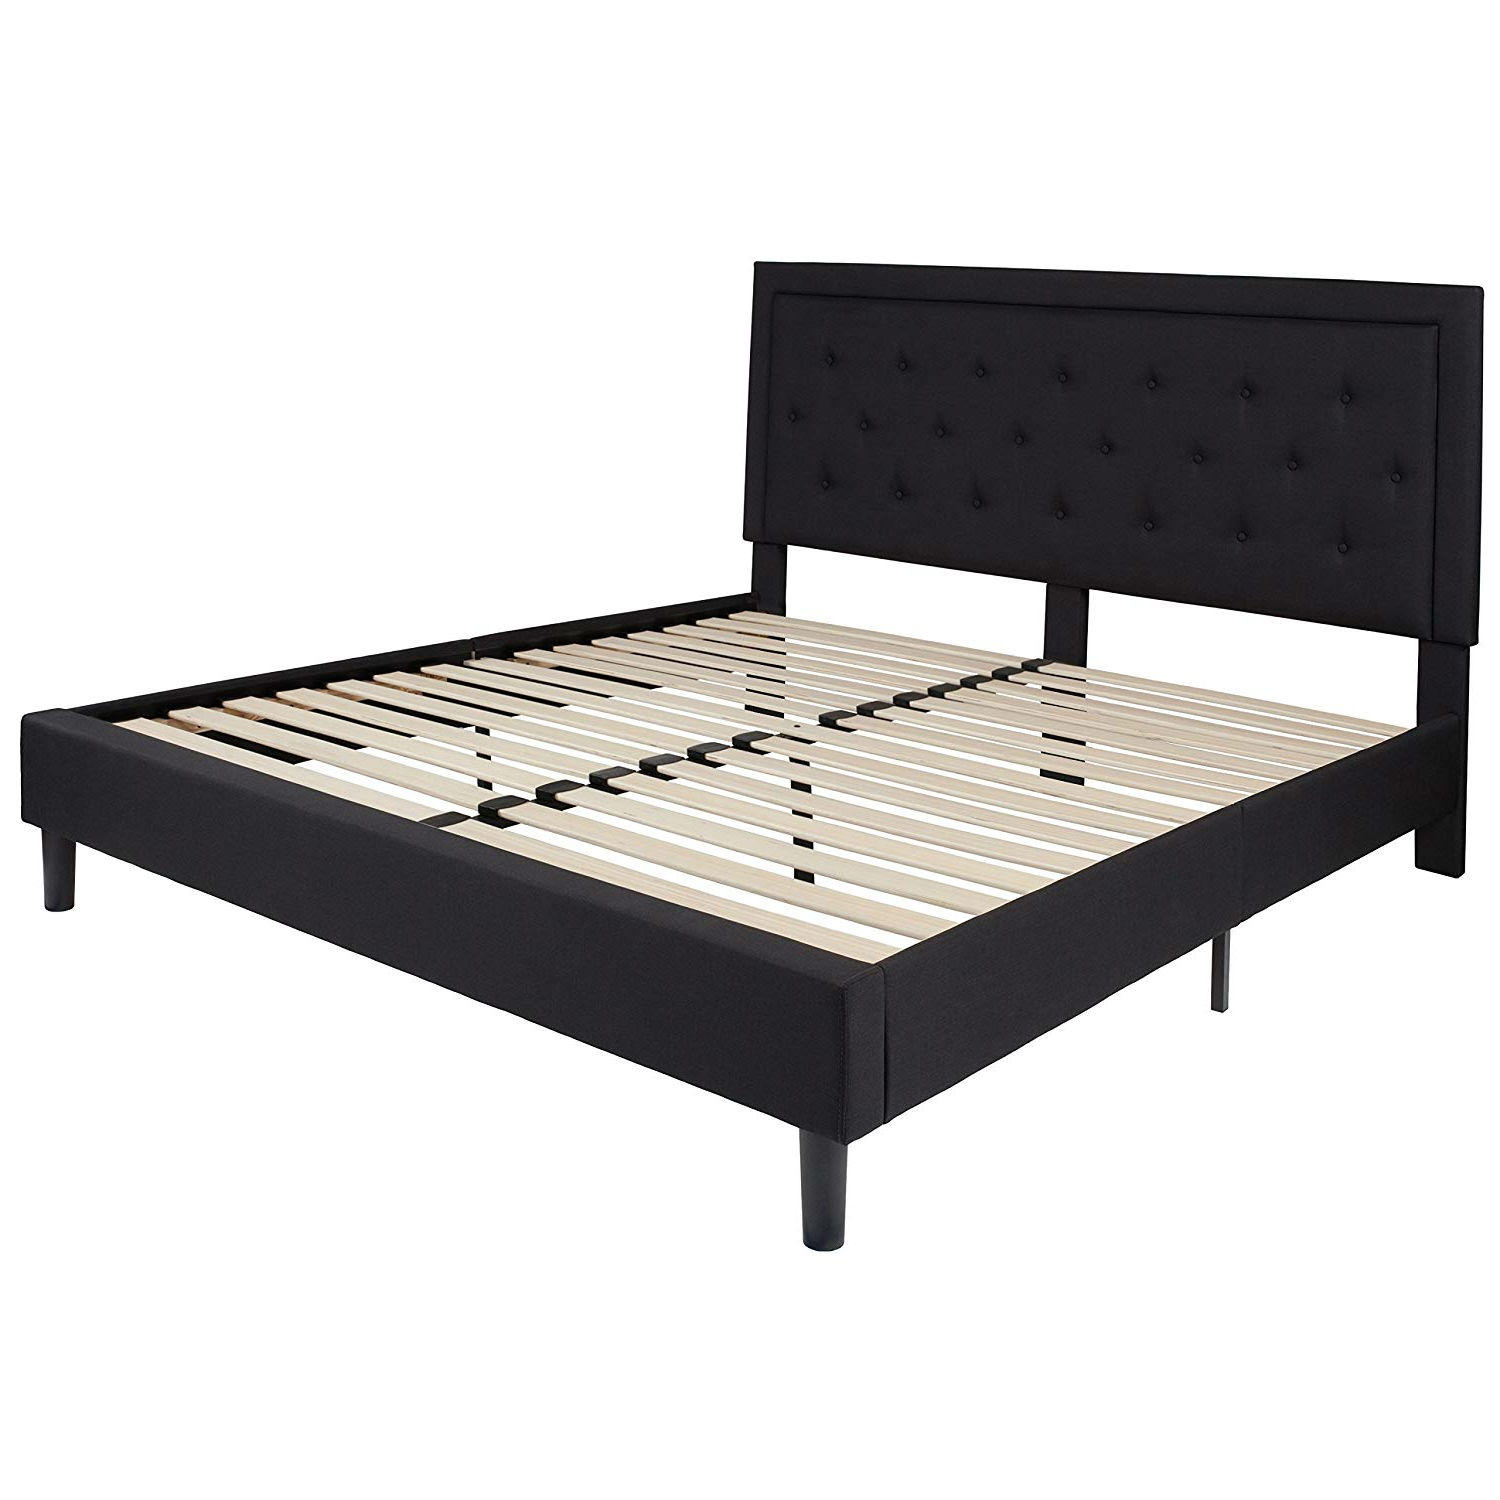 King Black Fabric Upholstered Platform Bed Frame With Button Tufted Headboard Fastfurnishings Com